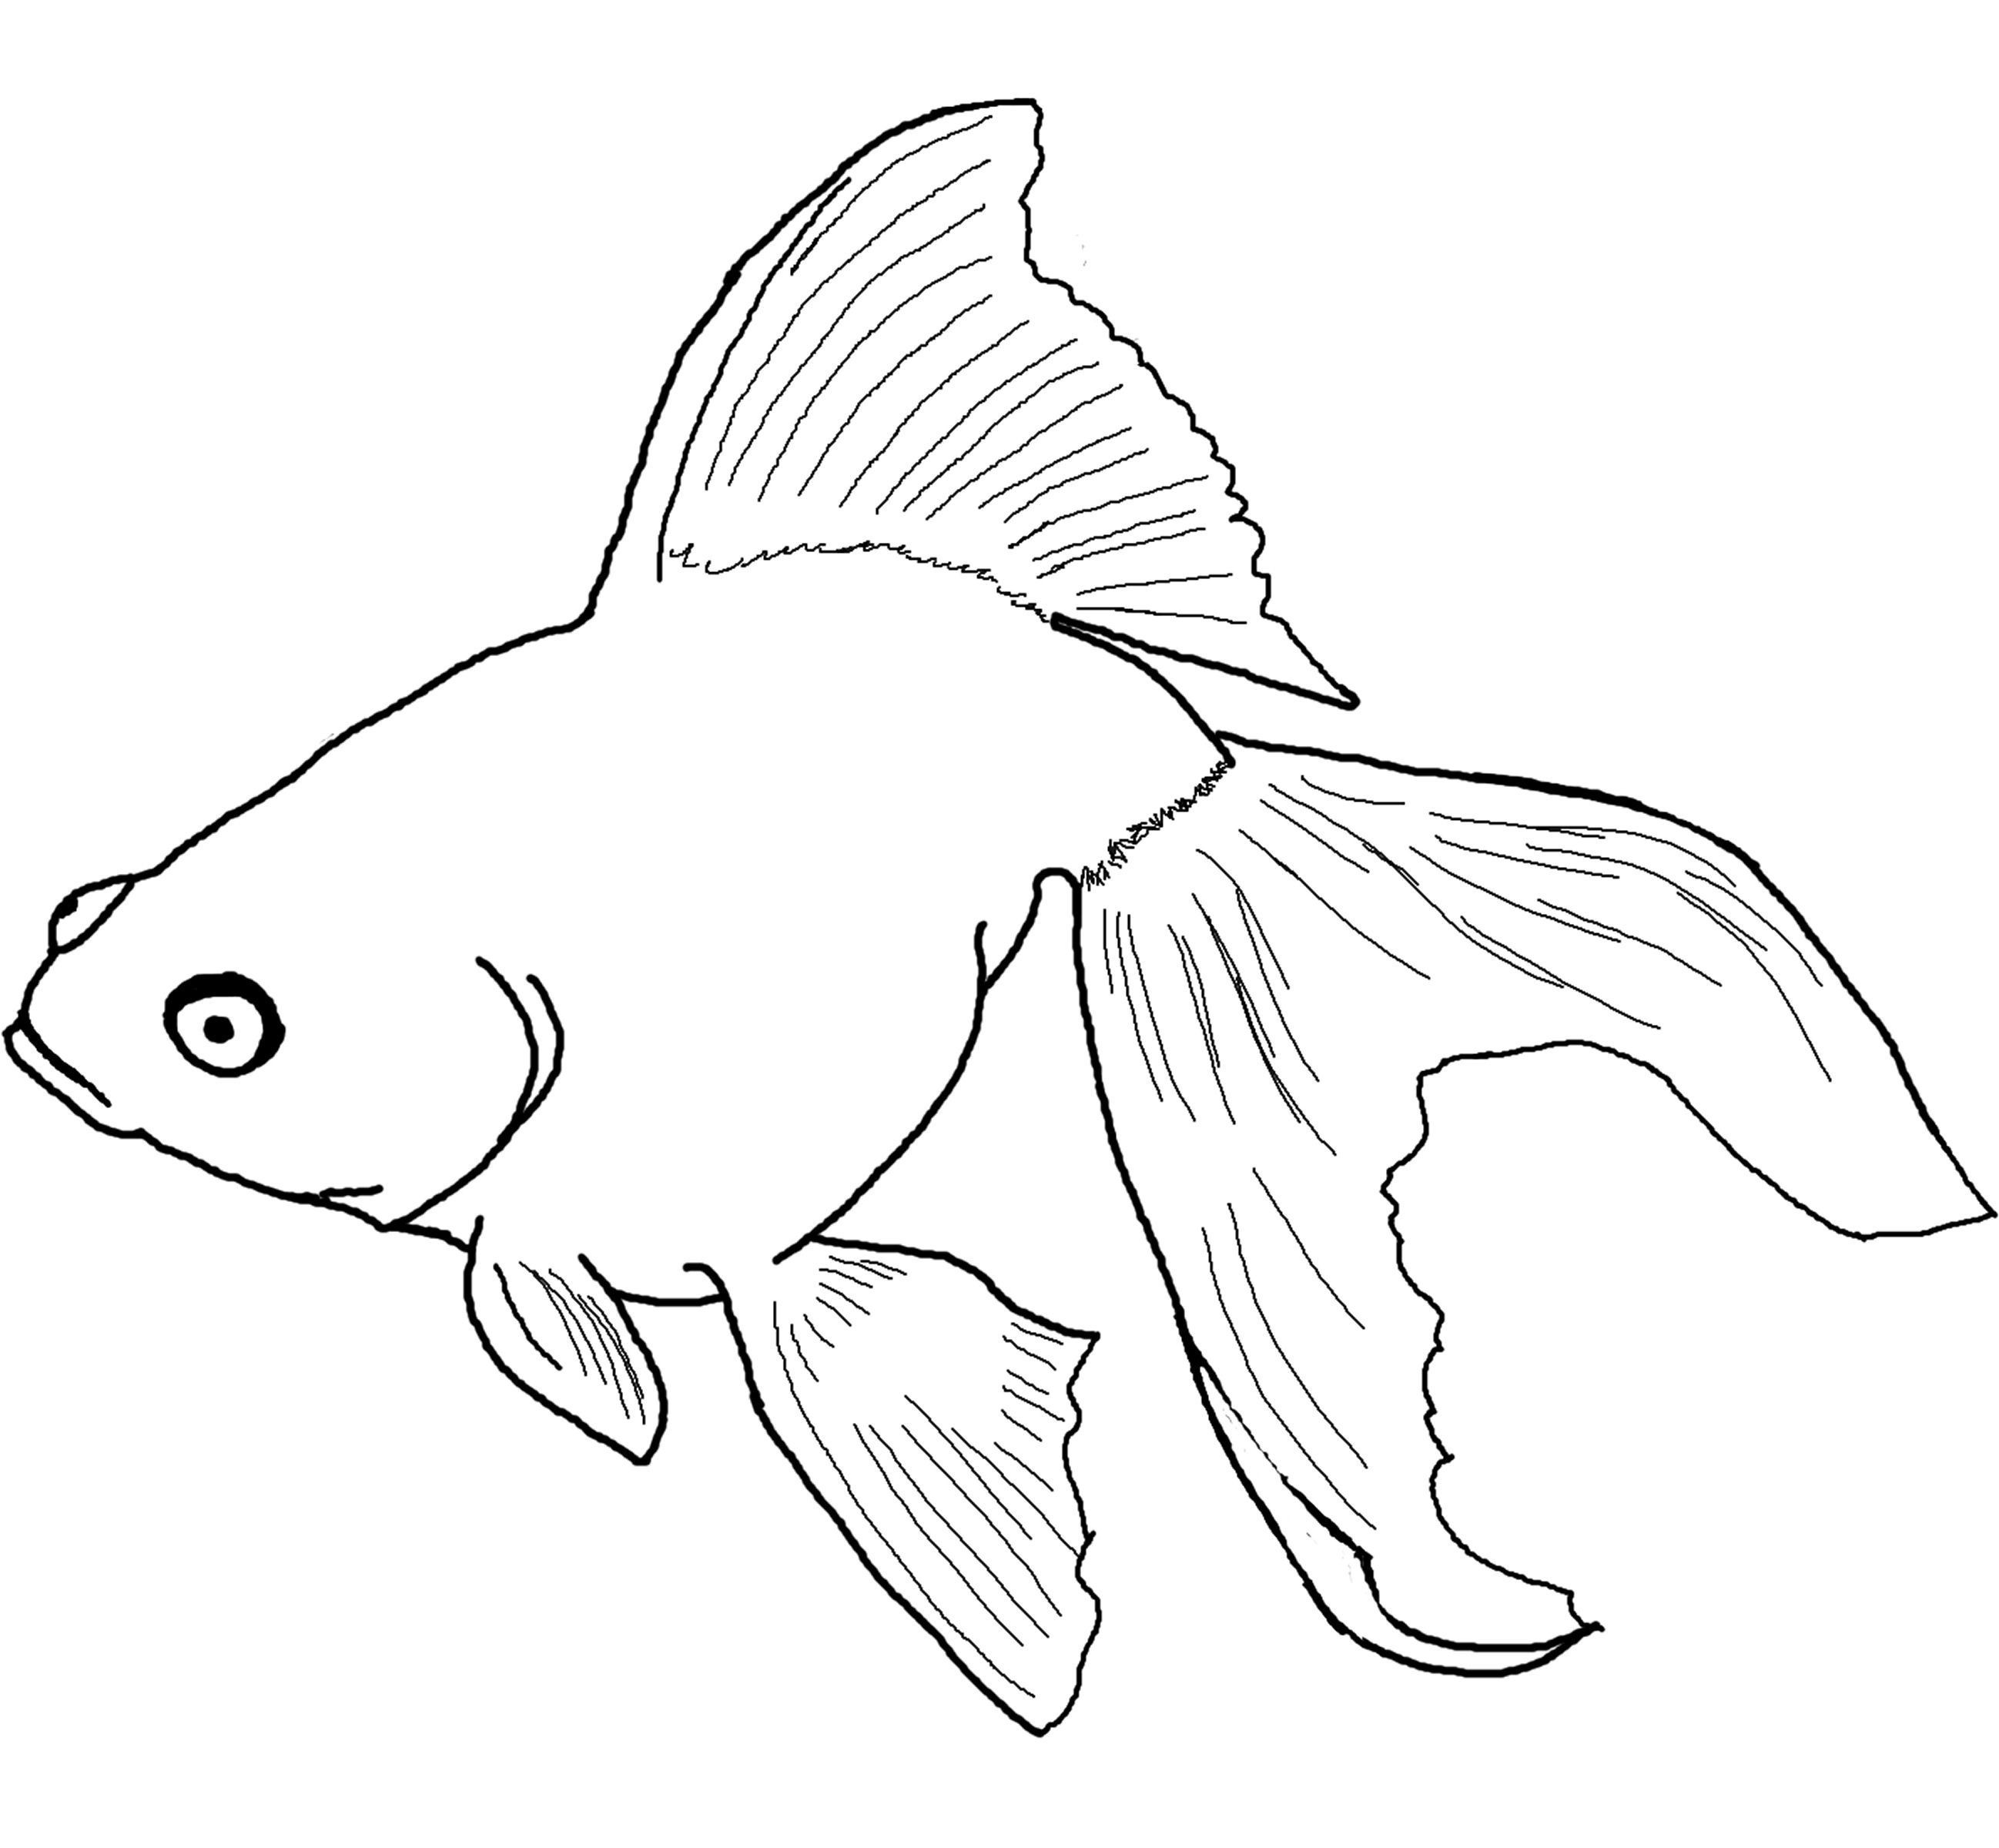 2596x2400 Rainbow Fish Coloring Page Unique New Rainbow Trout Coloring Pages